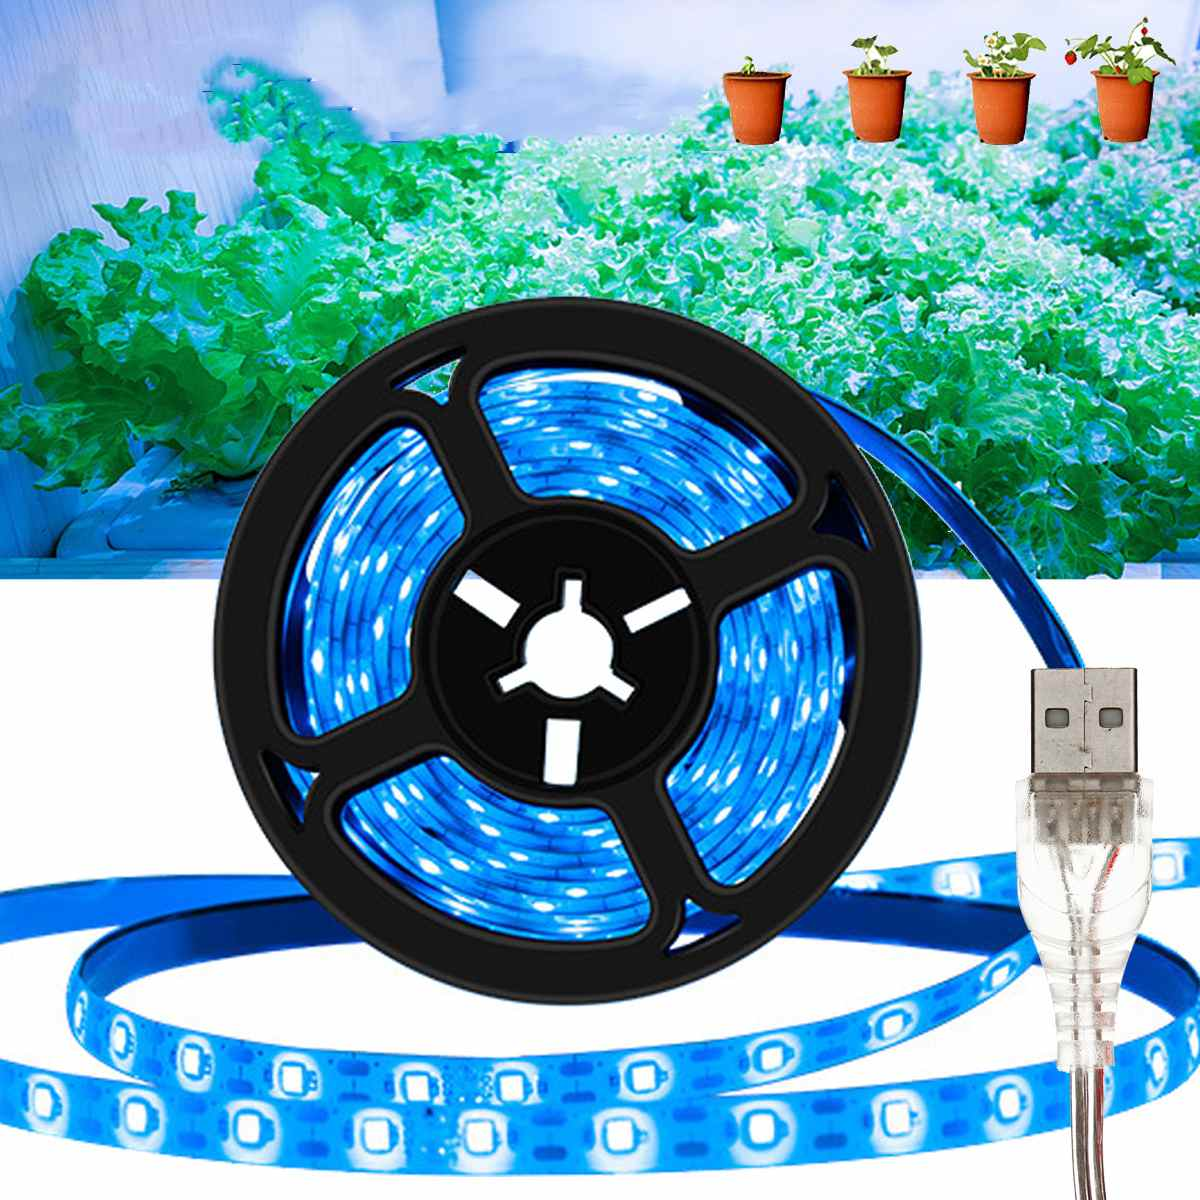 Full Spectrum LED Grow Light USB 5V LED Greenhouse Strip 0.5 1 2 3m Waterproof 2835 SMD LED Phyto Lamp Hydroponic Plant Growing